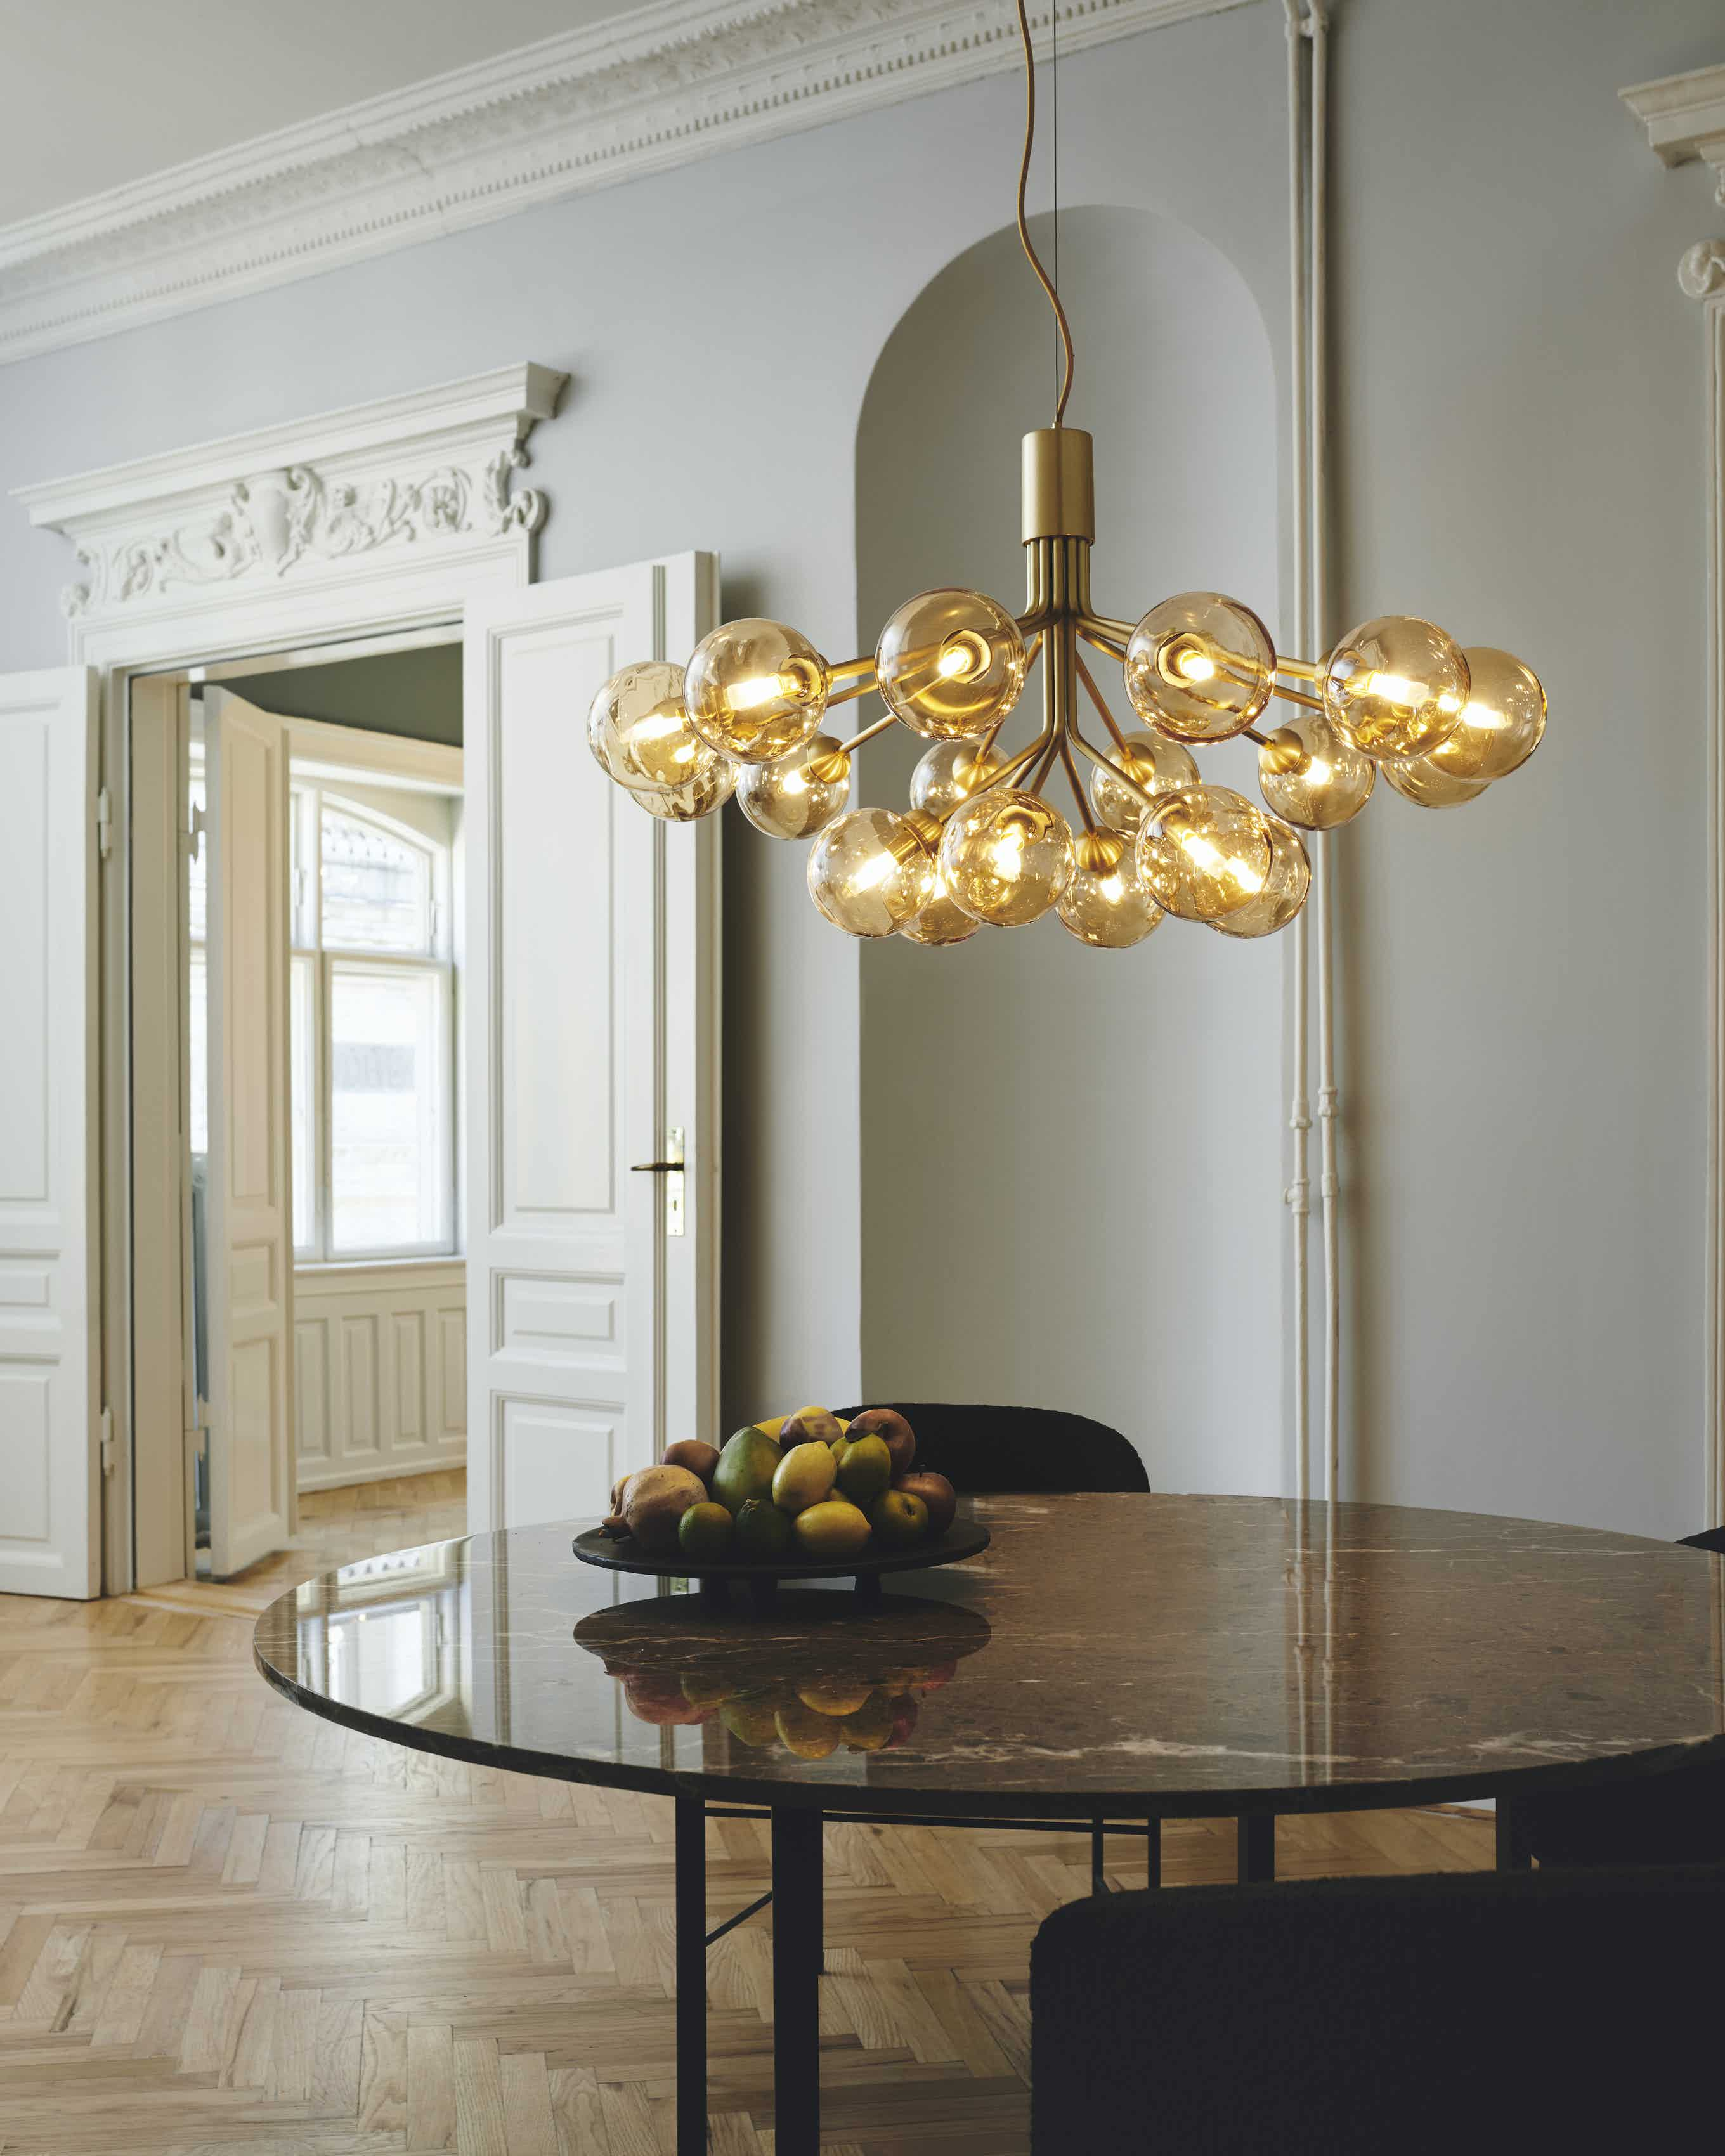 With inspiration from flowers, Sofie Refer designed the Apiales 18 chandelier. From a specially-produced canopy, the arms unfold like flower stalks from which light is spread with grace.